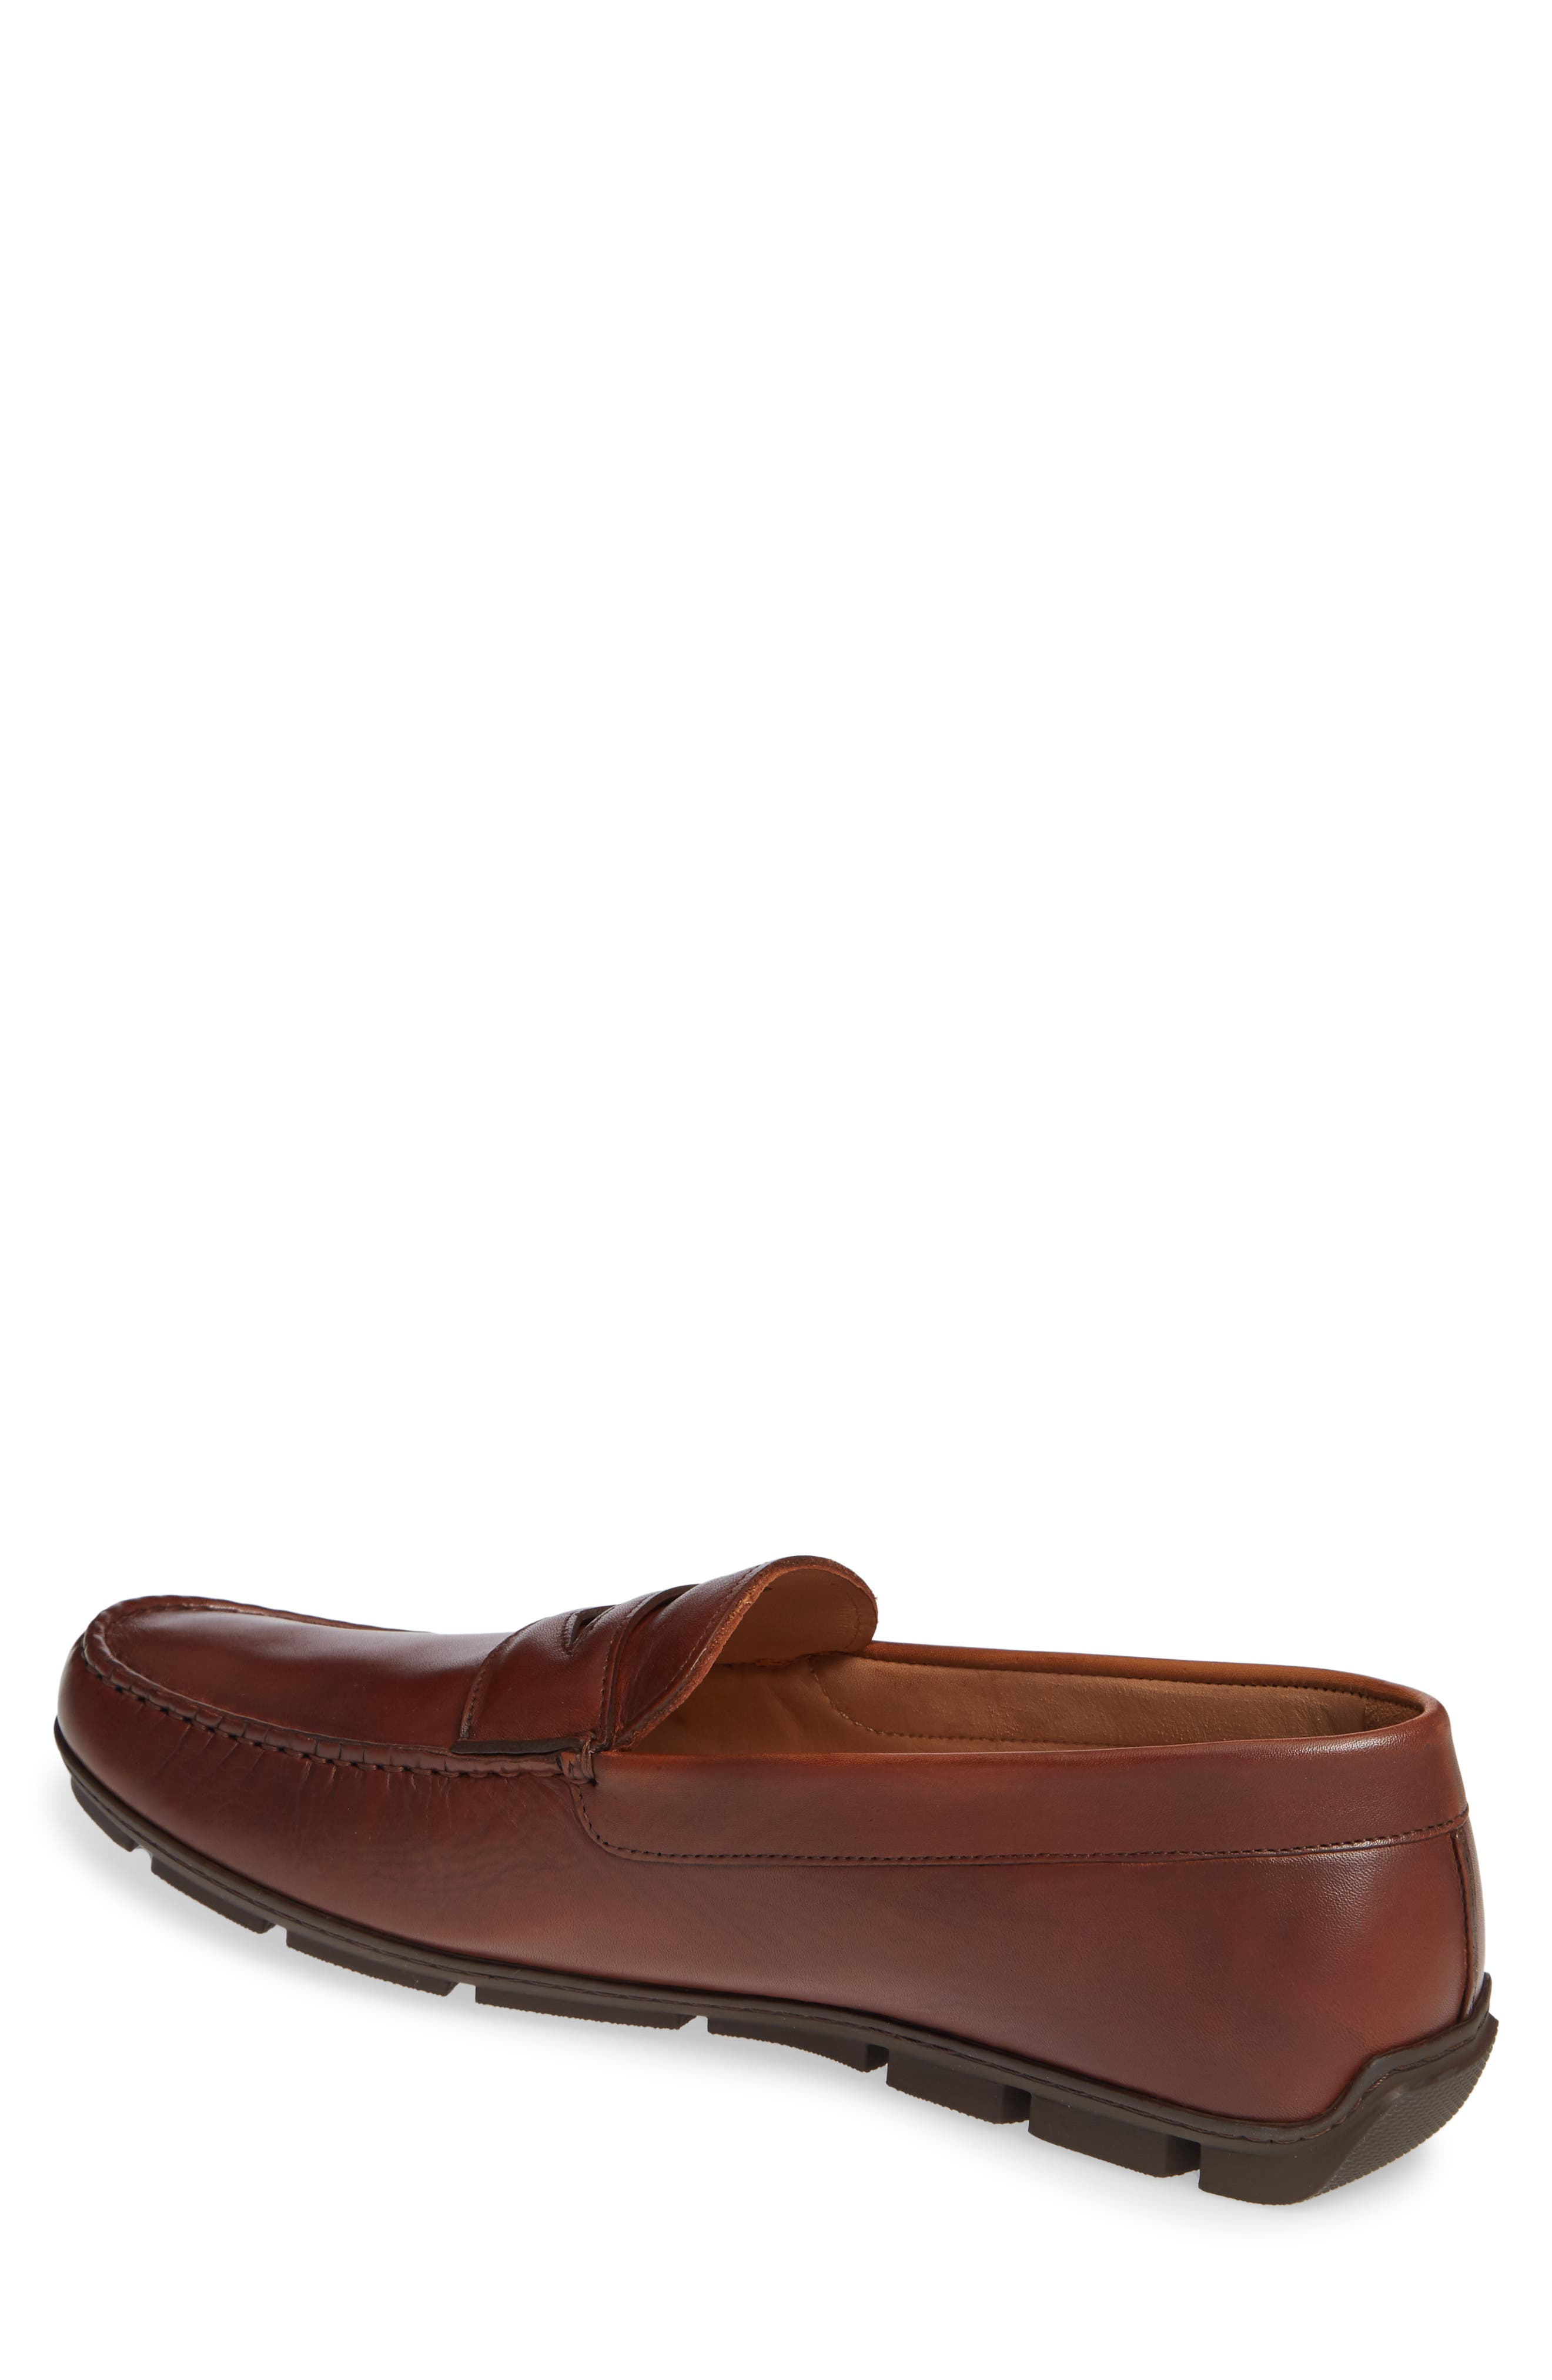 VINCE CAMUTO, Ditto Driving Shoe, Alternate thumbnail 2, color, COGNAC LEATHER